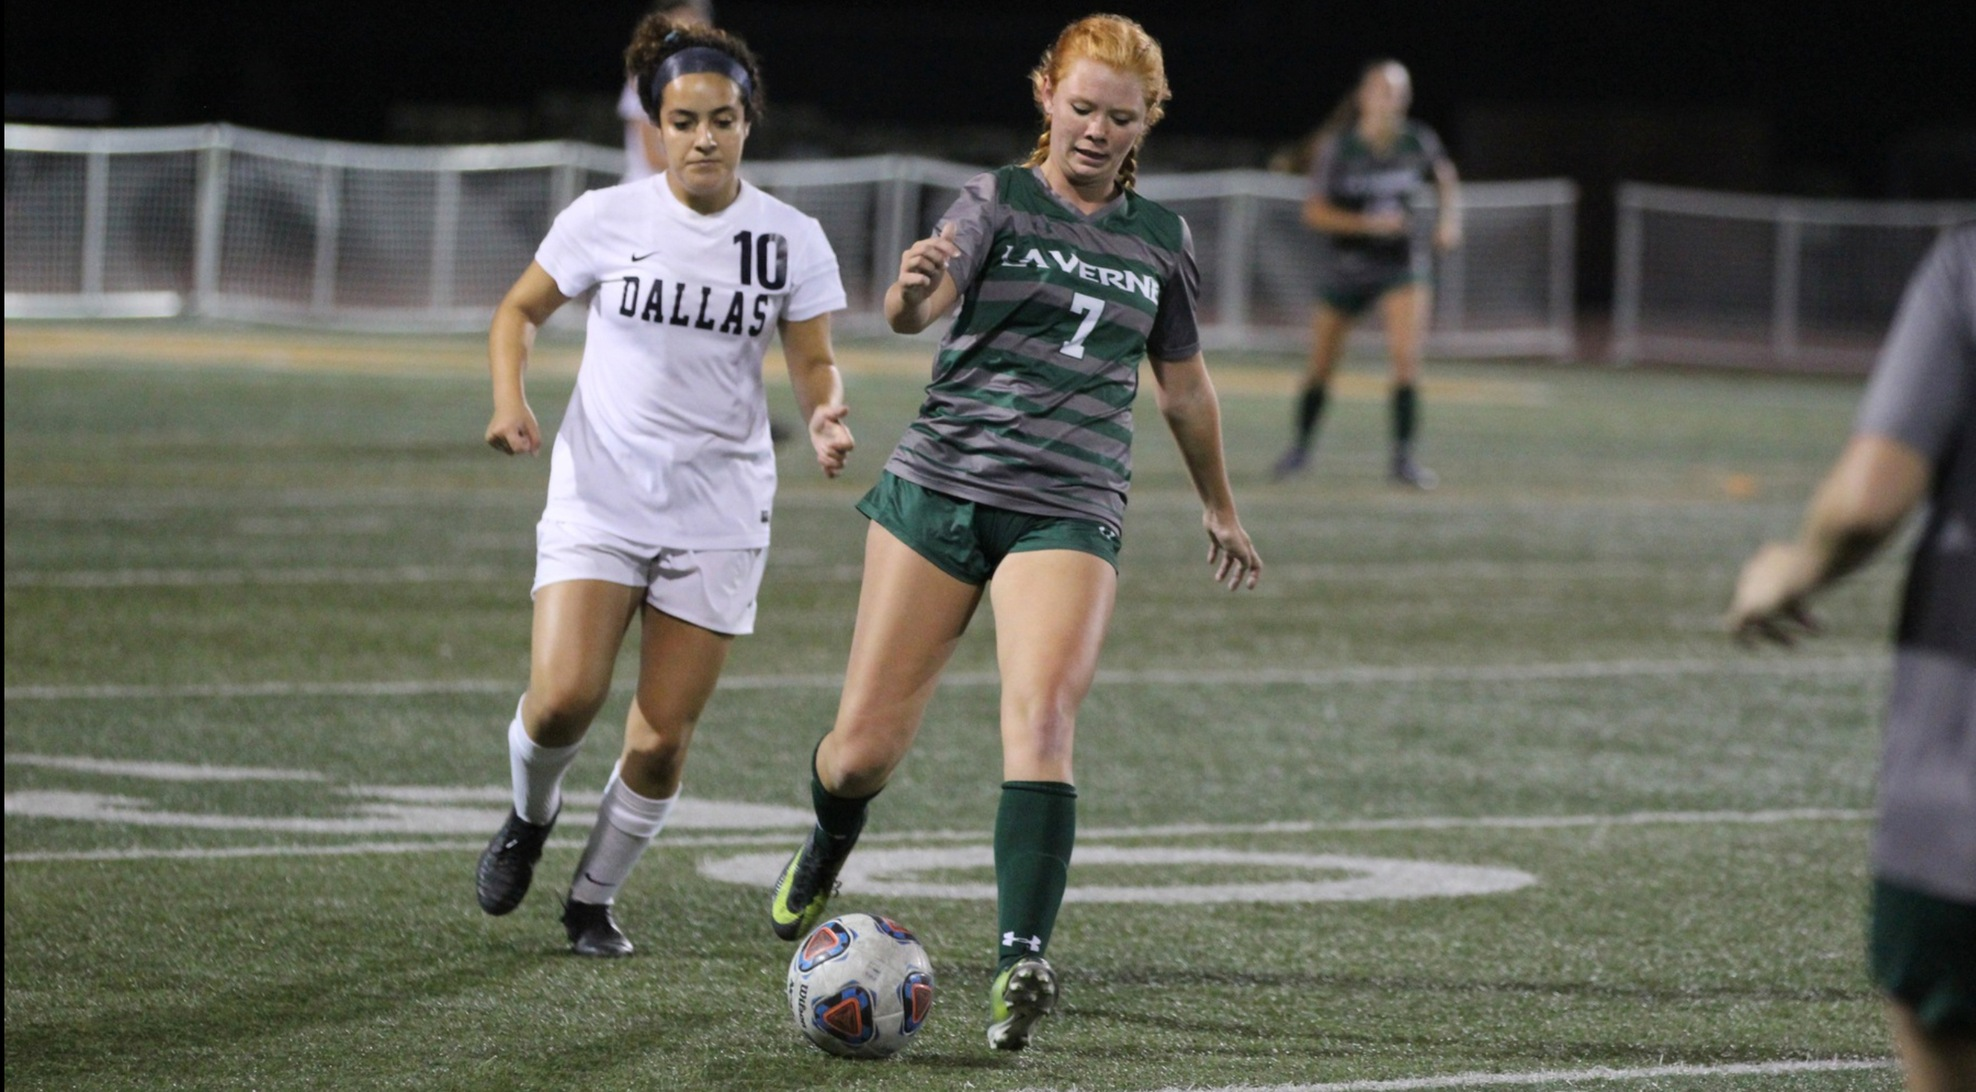 Women's soccer drops close match to North Central